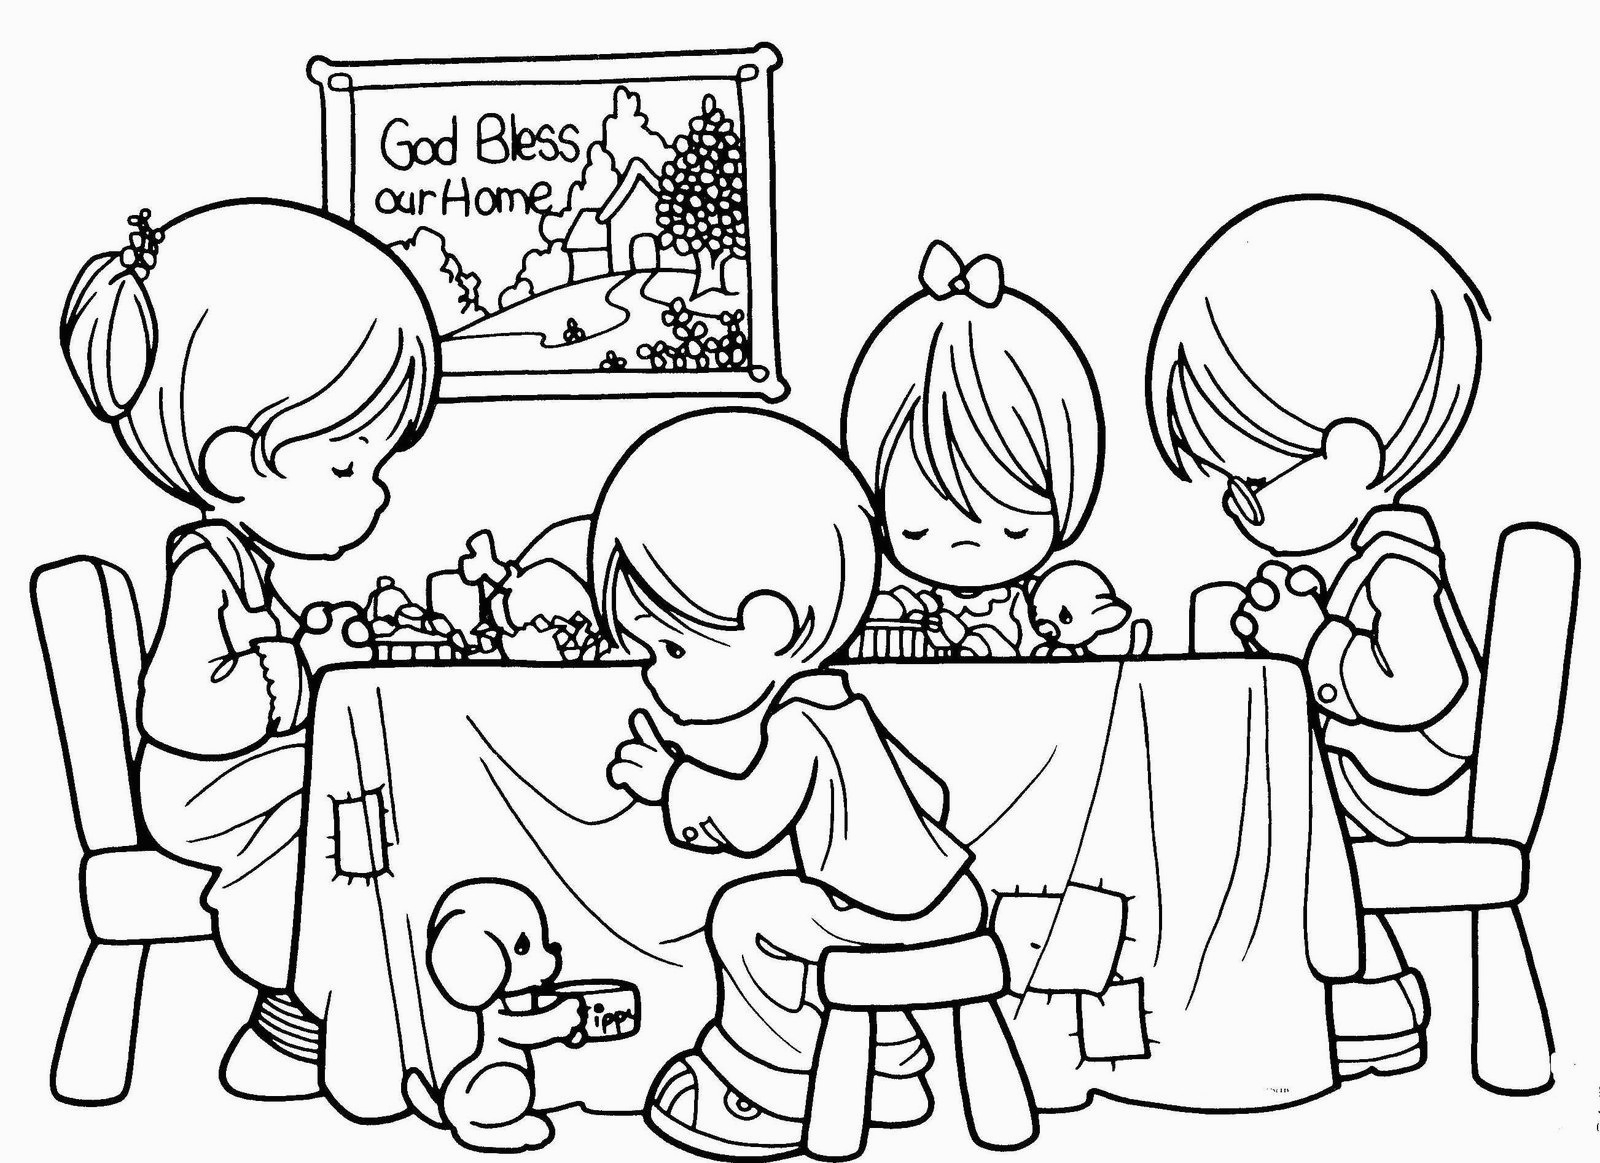 Religious Coloring Pages For Kids Coloring Pages Freerintable Christian Coloringages For Kids Best